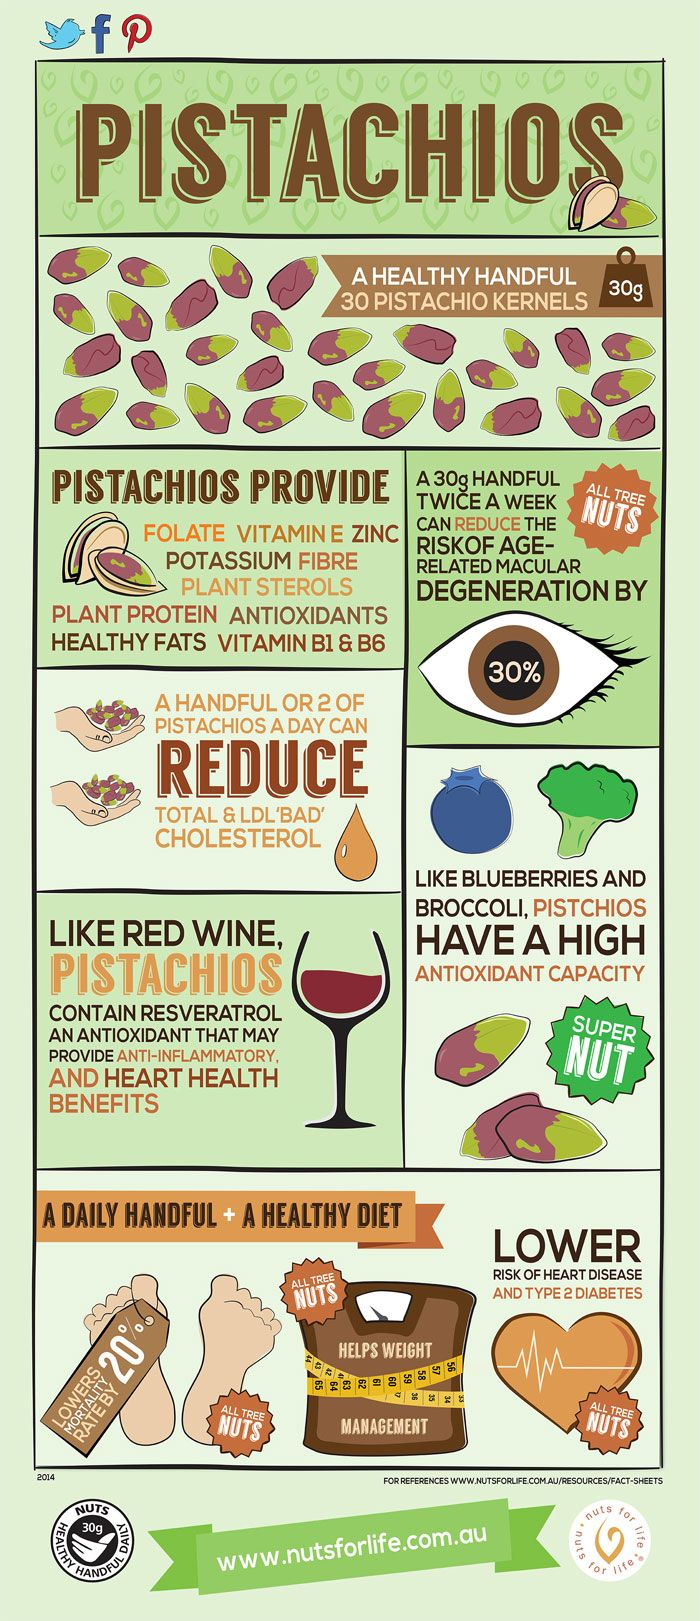 Pistachio Health Benefits! #healthy #folate #cholesterol